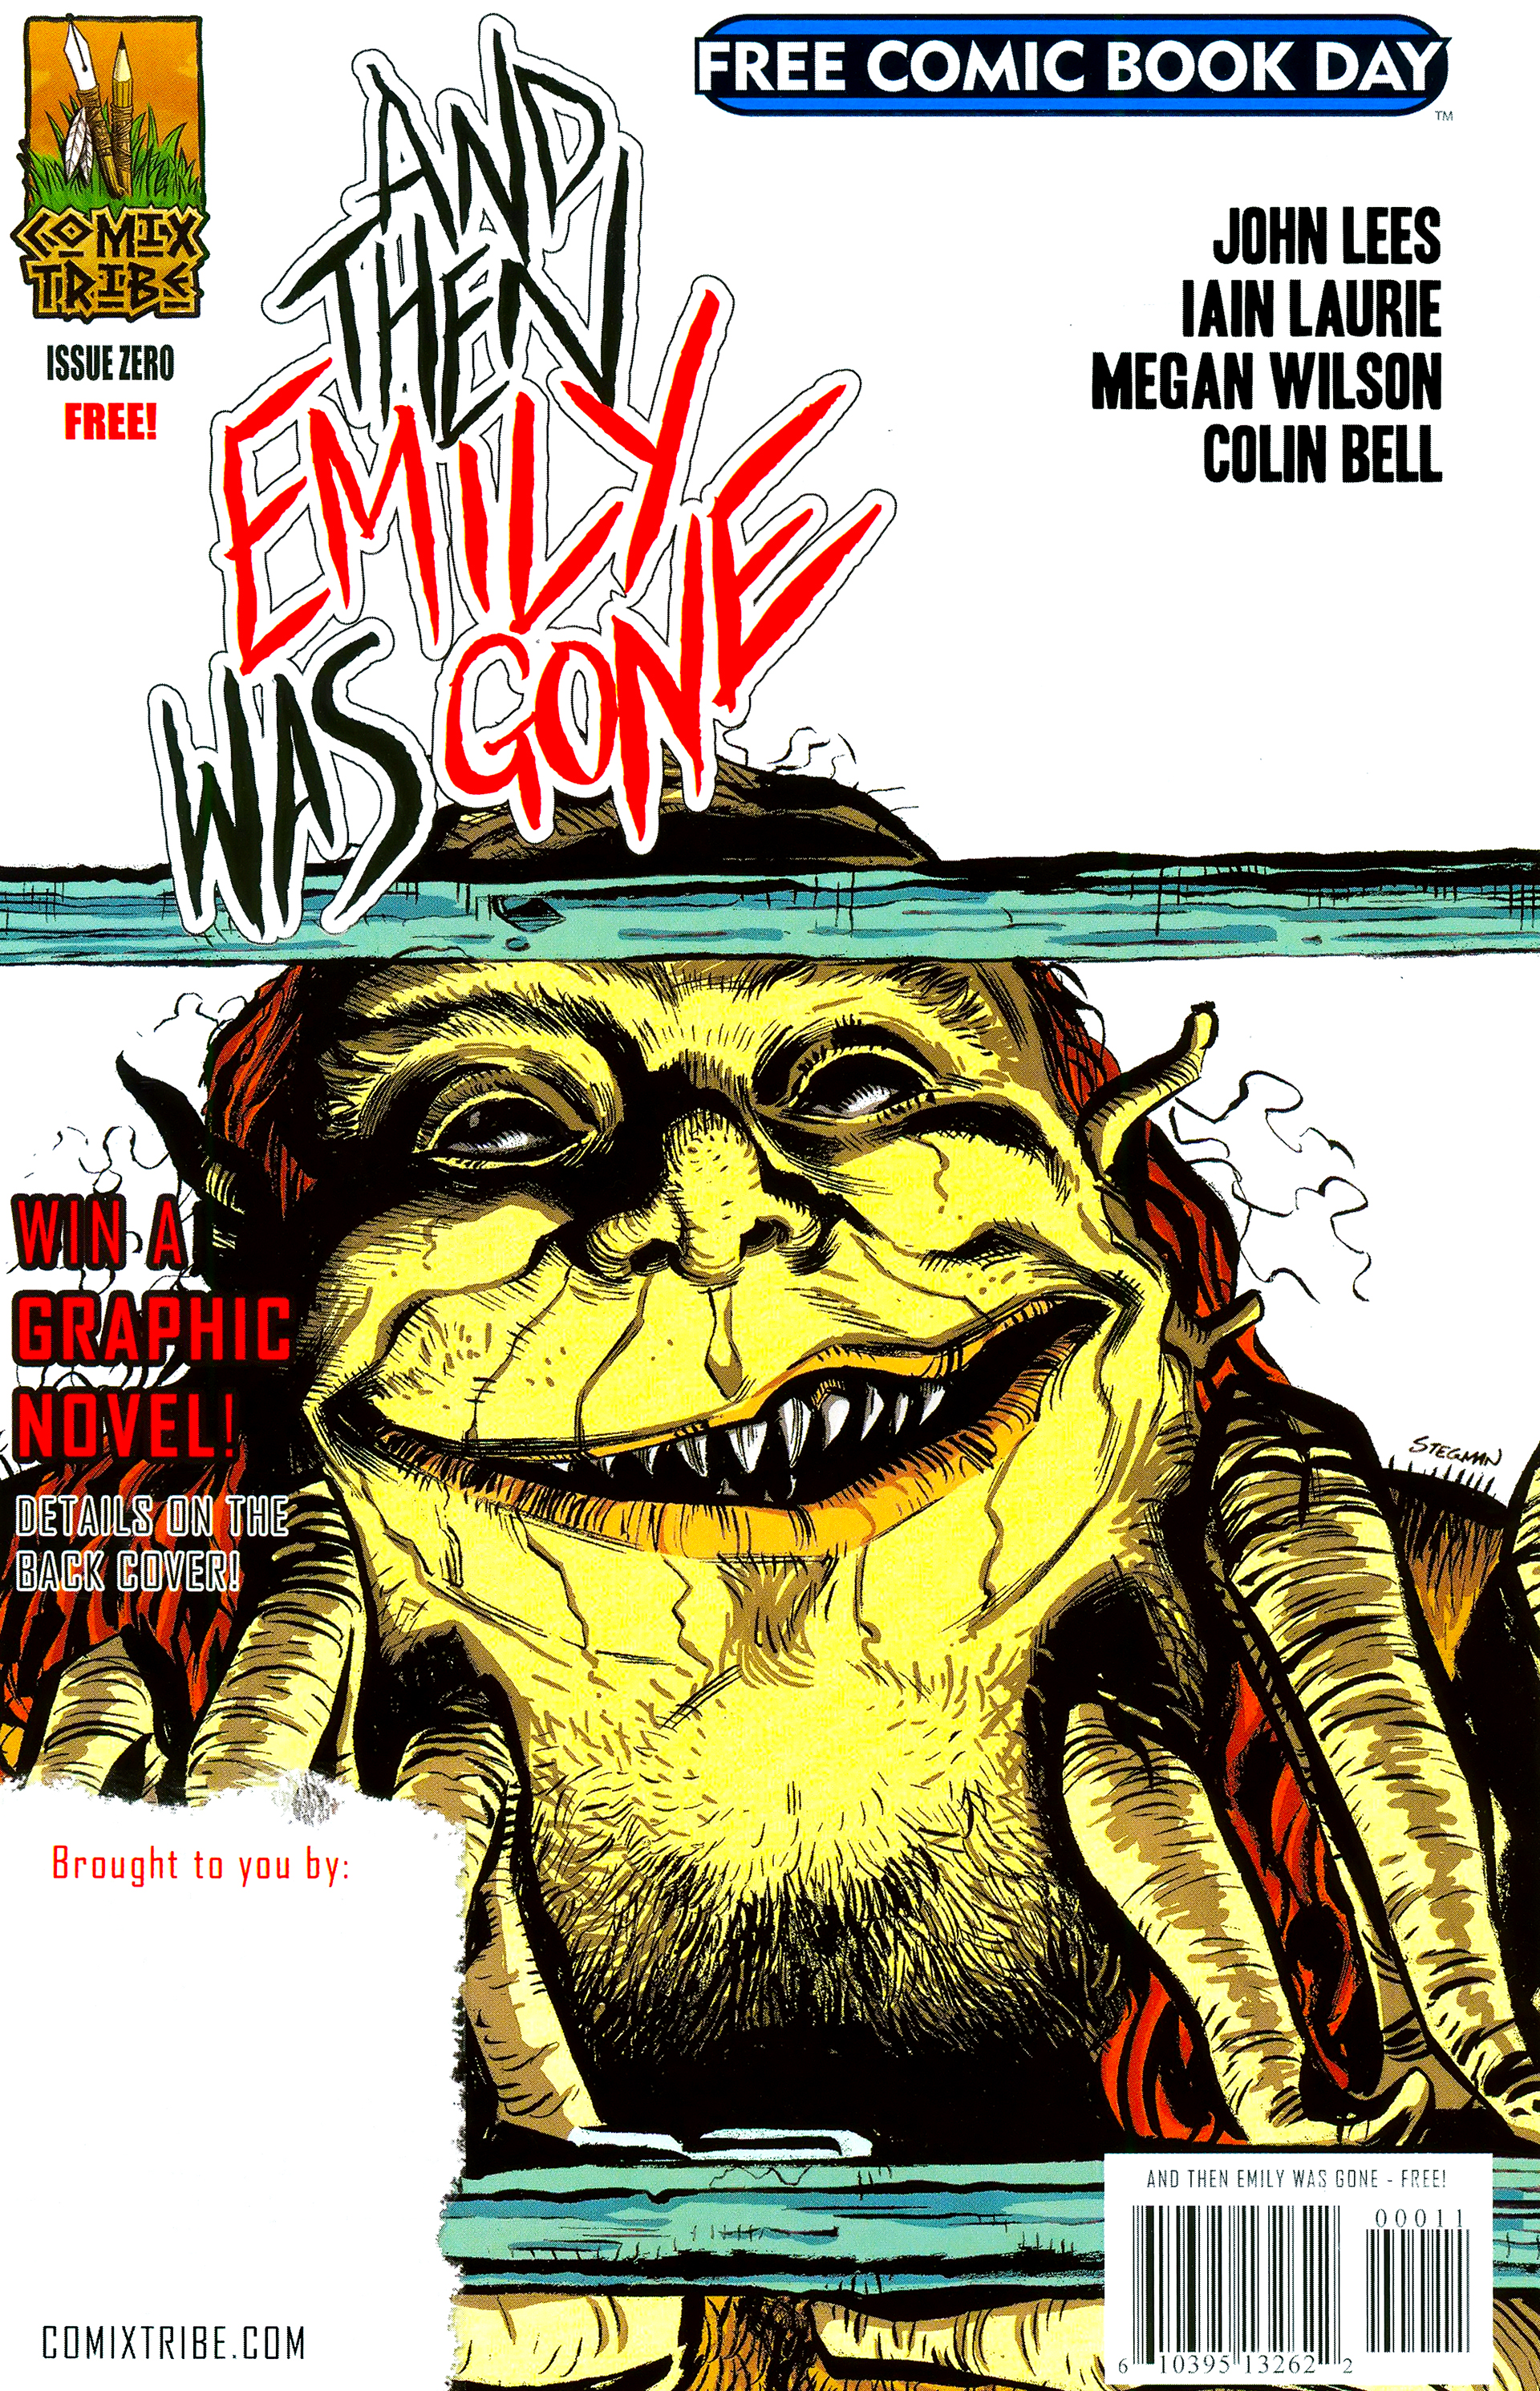 And Then Emily Was Gone FCBD 2015 And Then Emily Was Gone FCBD 2015.jpg